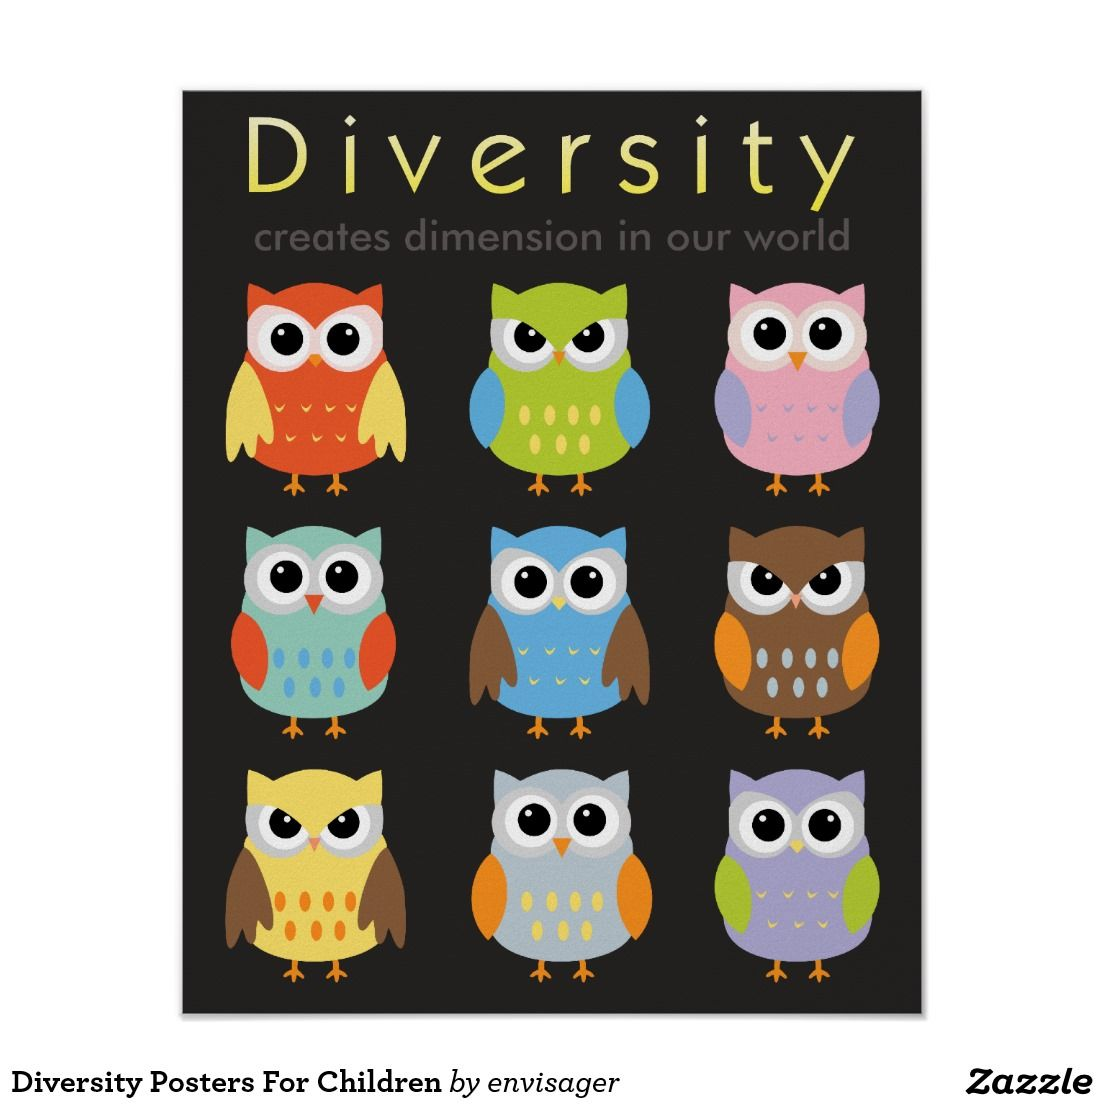 Zazzle poster design - Diversity Posters For Children